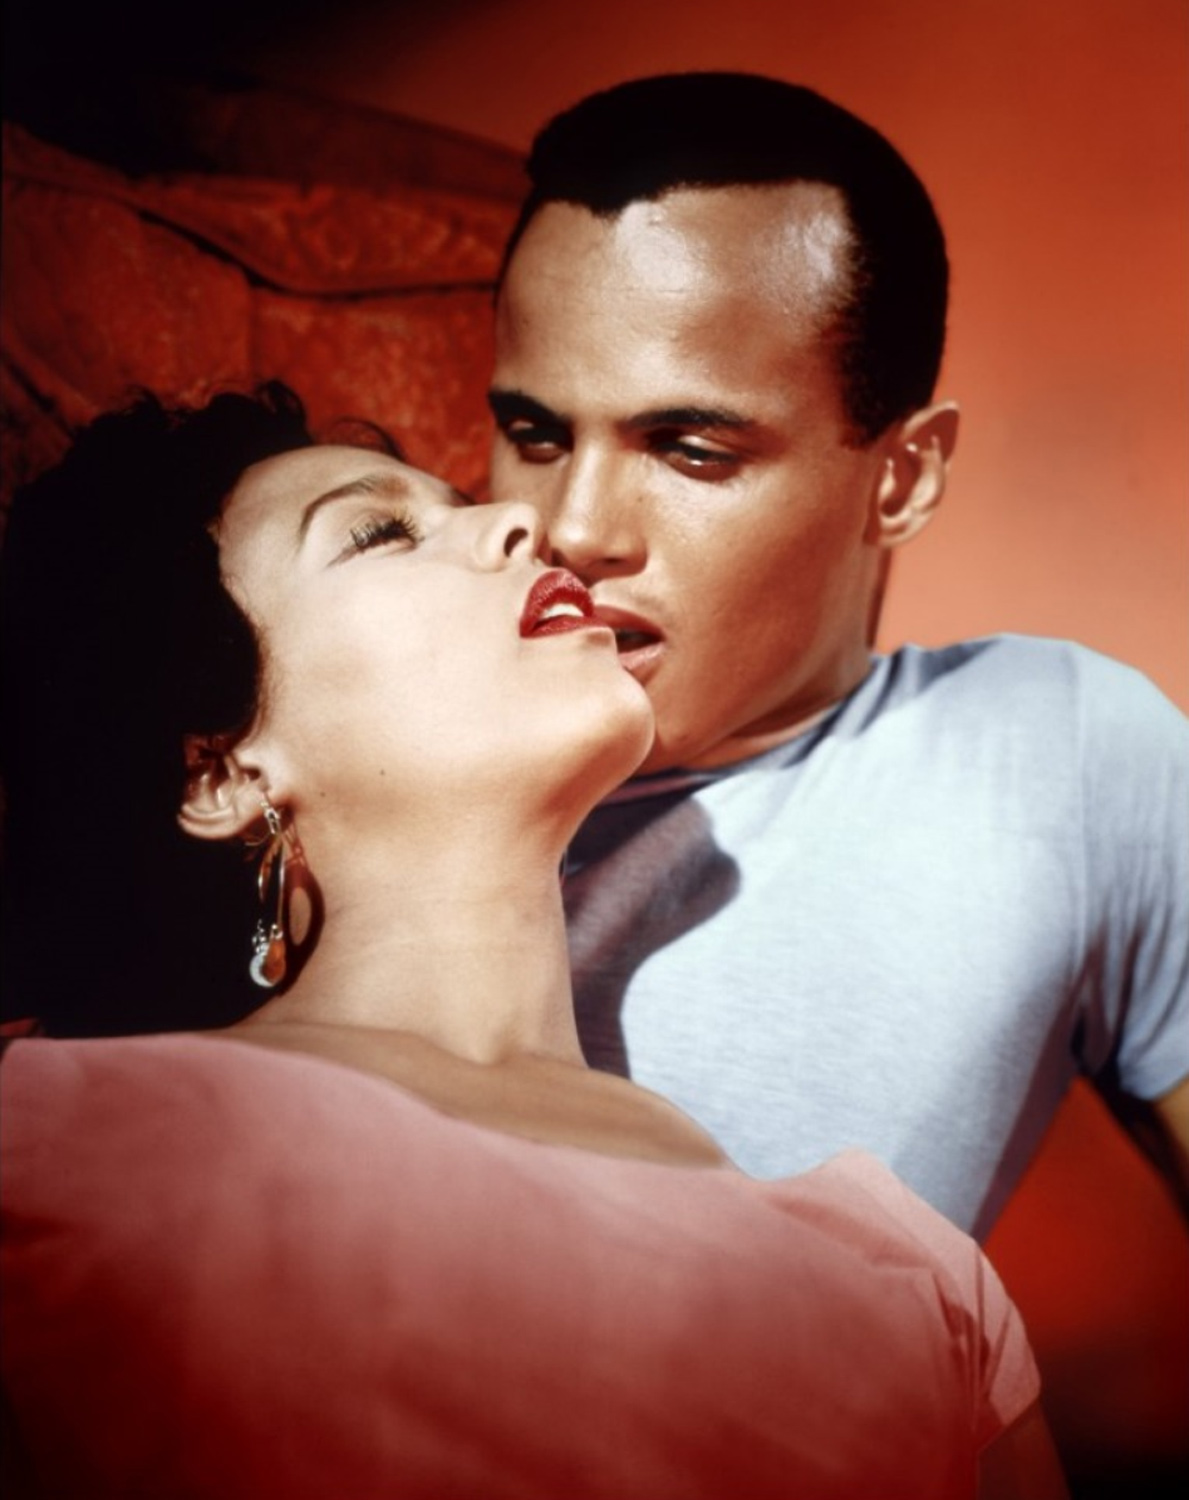 annex_dandridge_dorothy_carmen_jones_nrfpt_03.jpg